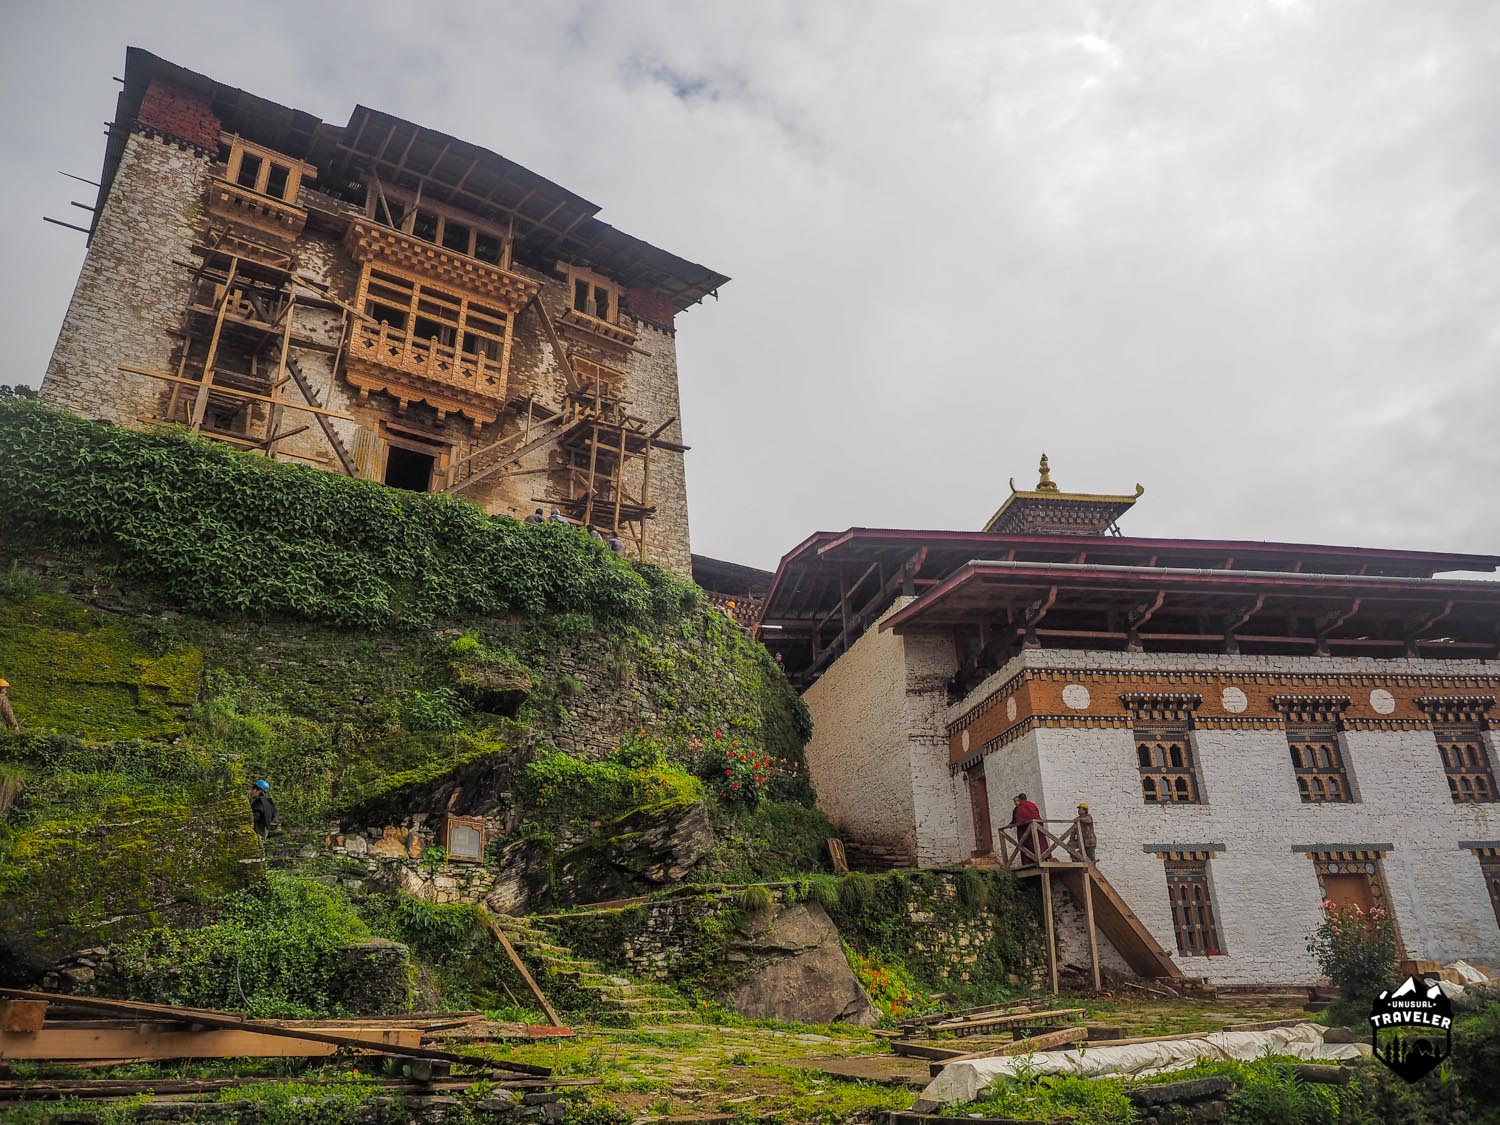 Reconstruction undergoing on the main tower inside the Dzong